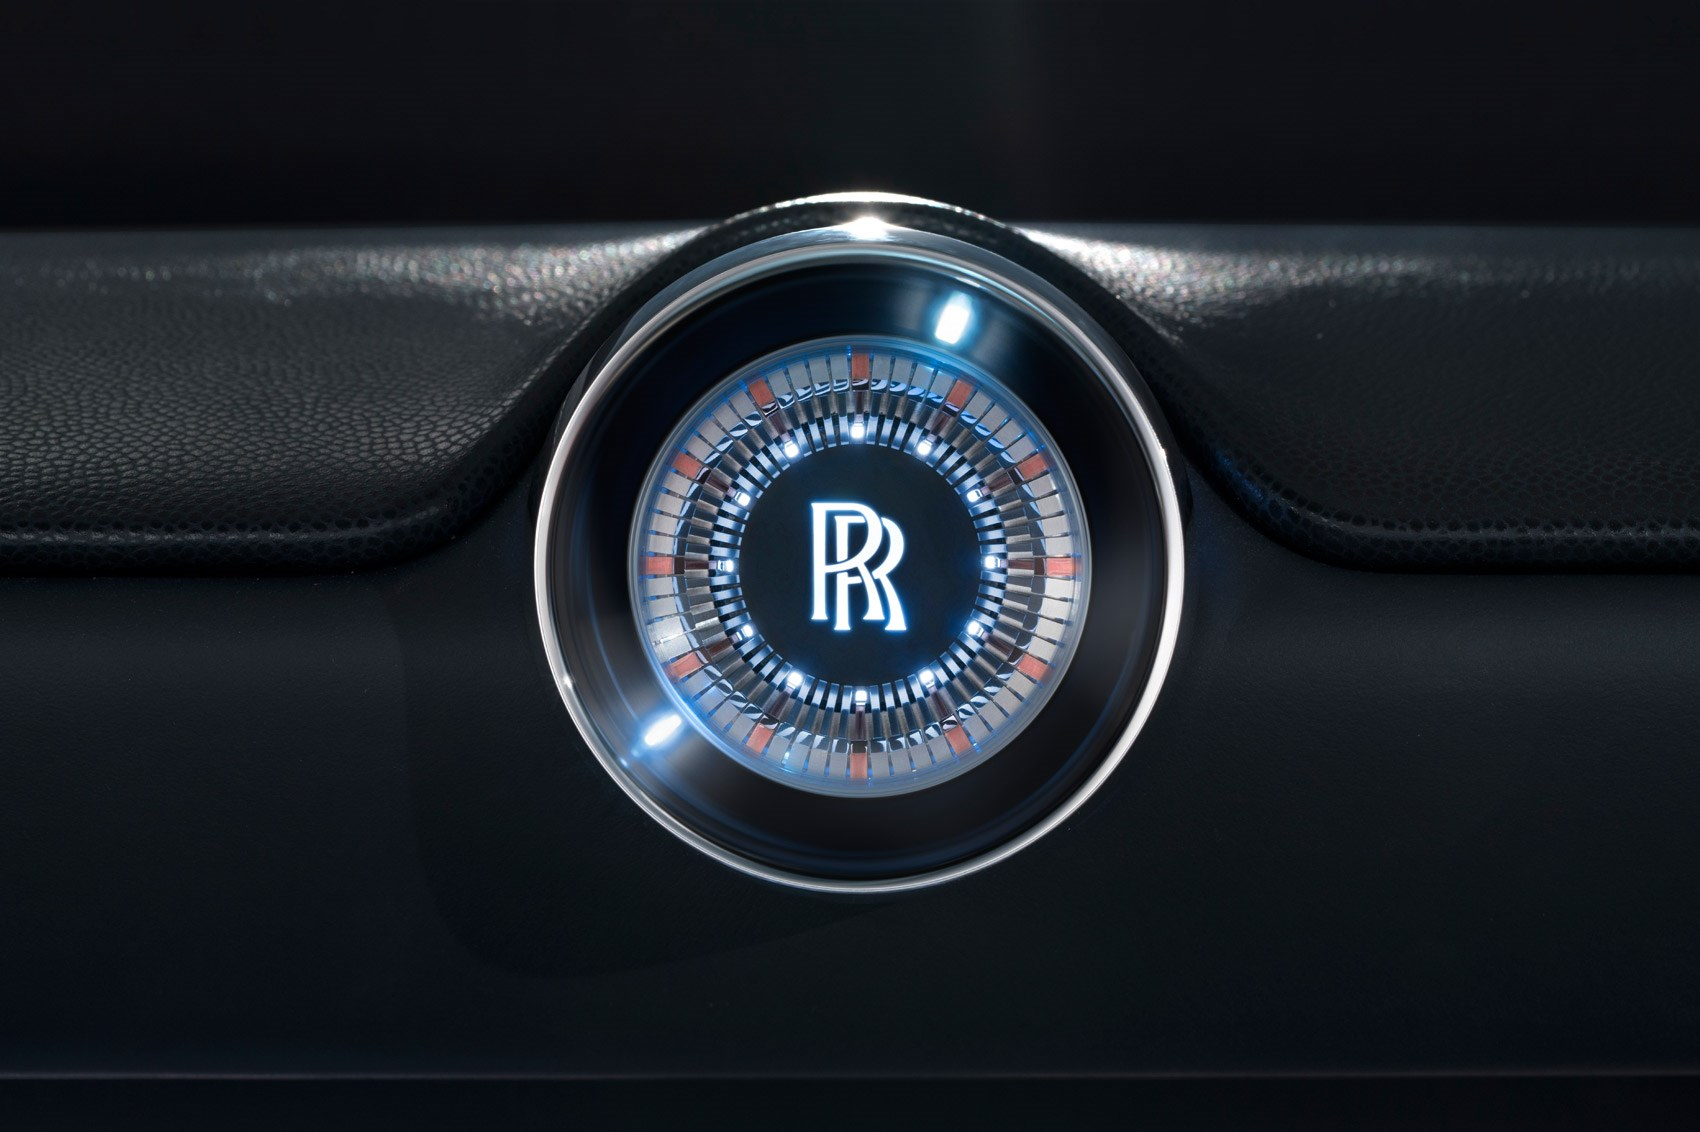 Jeep Concept 2016 >> And now for something completely different: Rolls-Royce Vision Next 100 concept unveiled | CAR ...